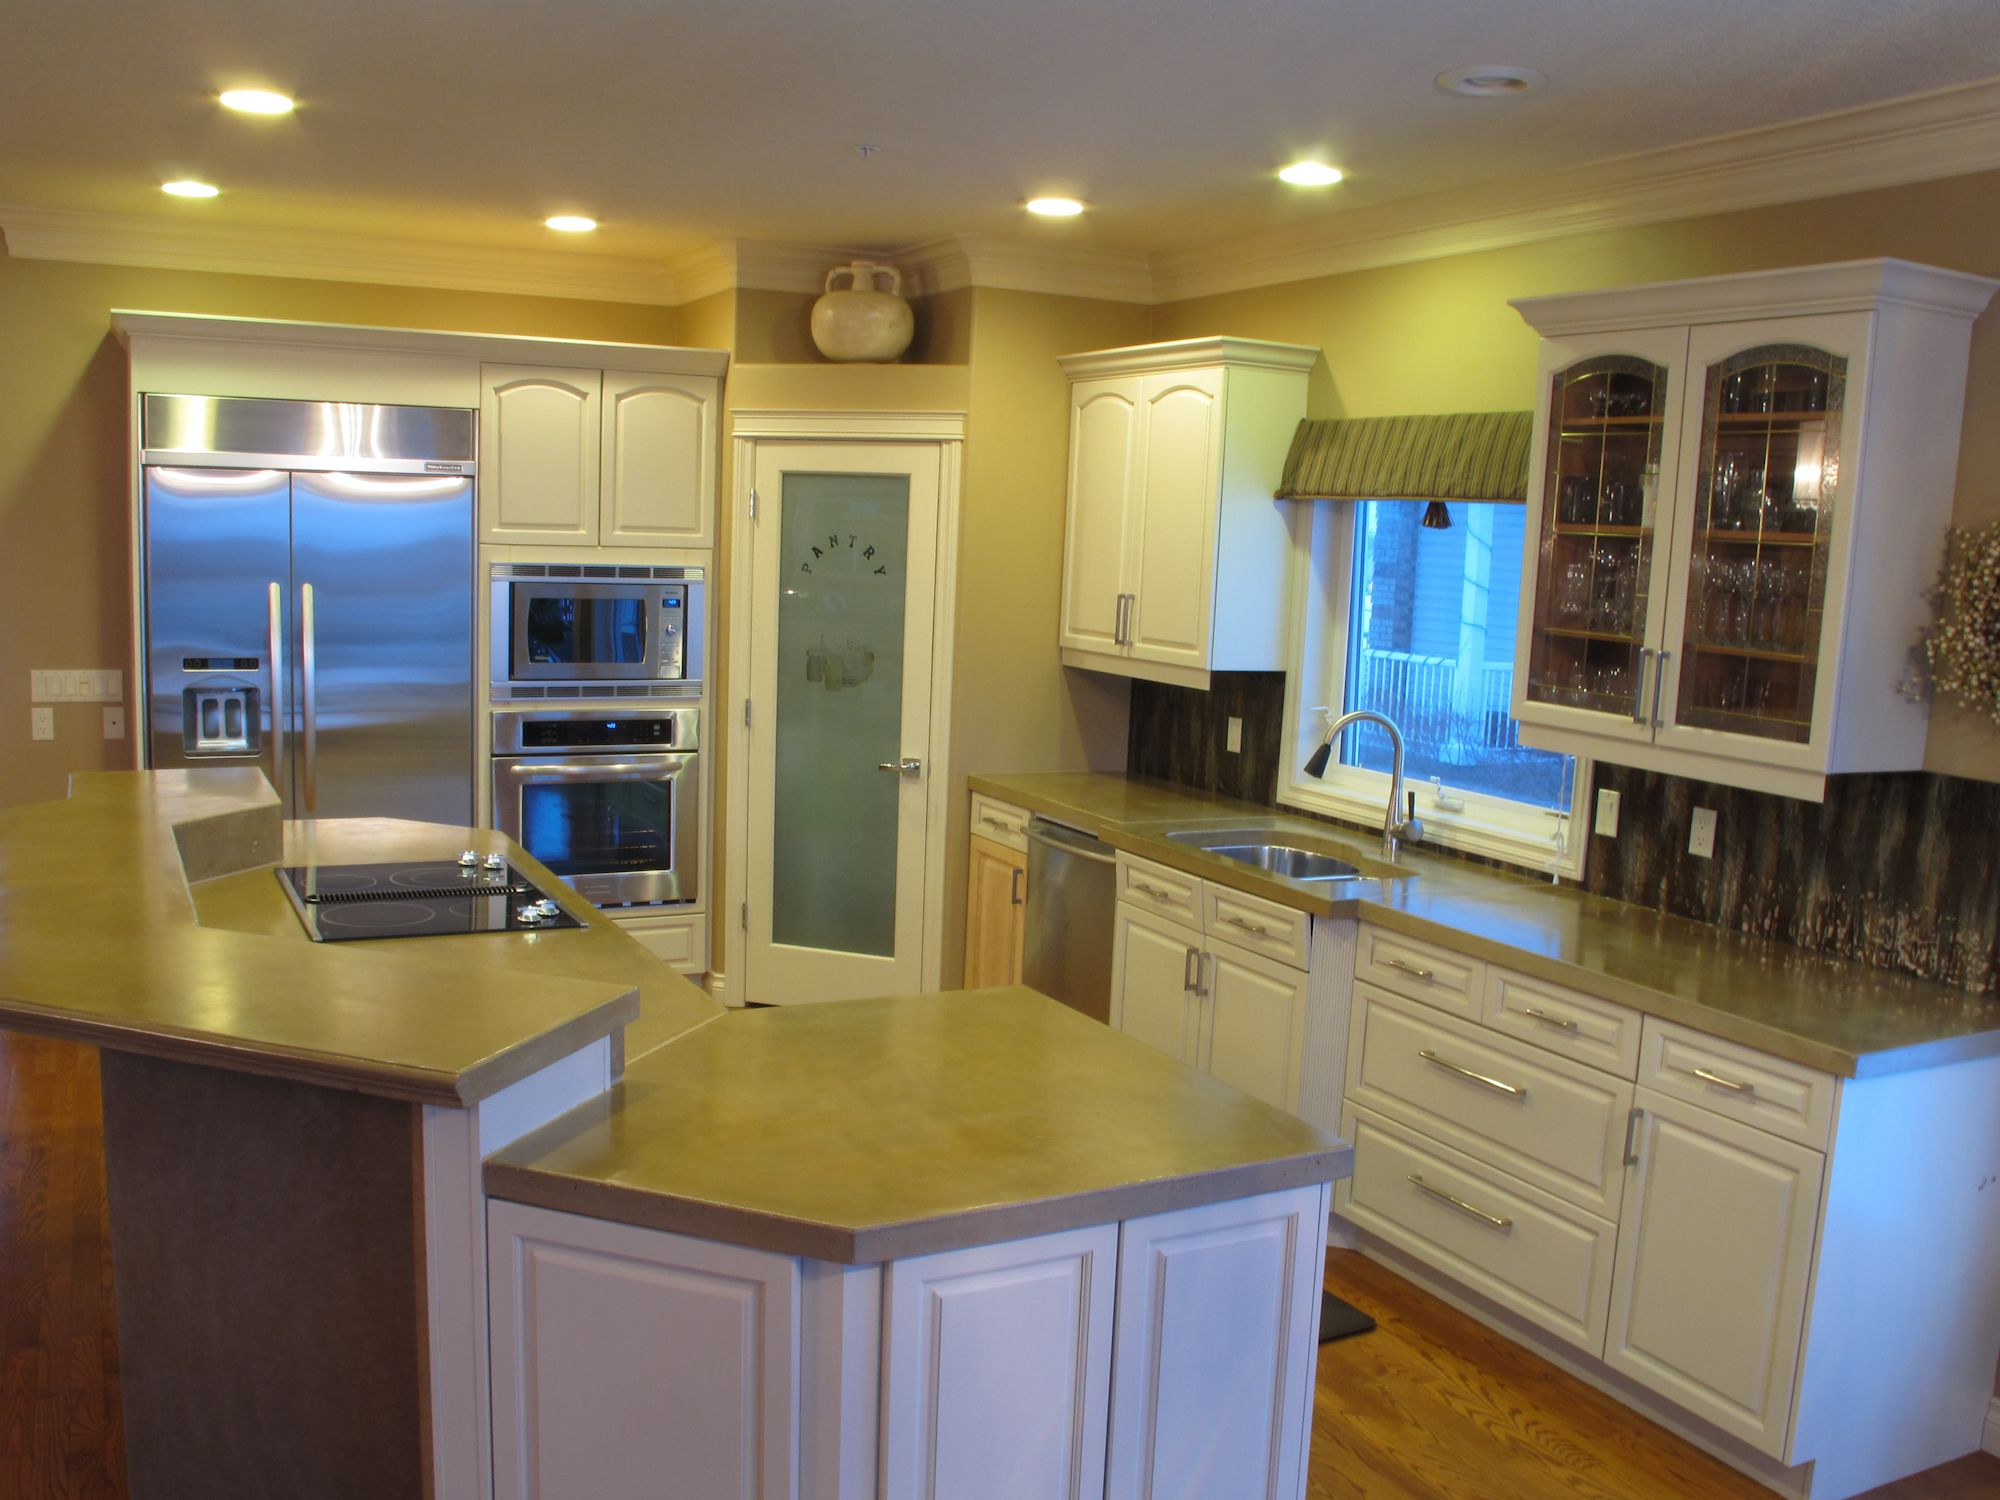 corner pantry with frosted glass door love with images kitchen remodel countertops on kitchen remodel kitchen designs id=70792